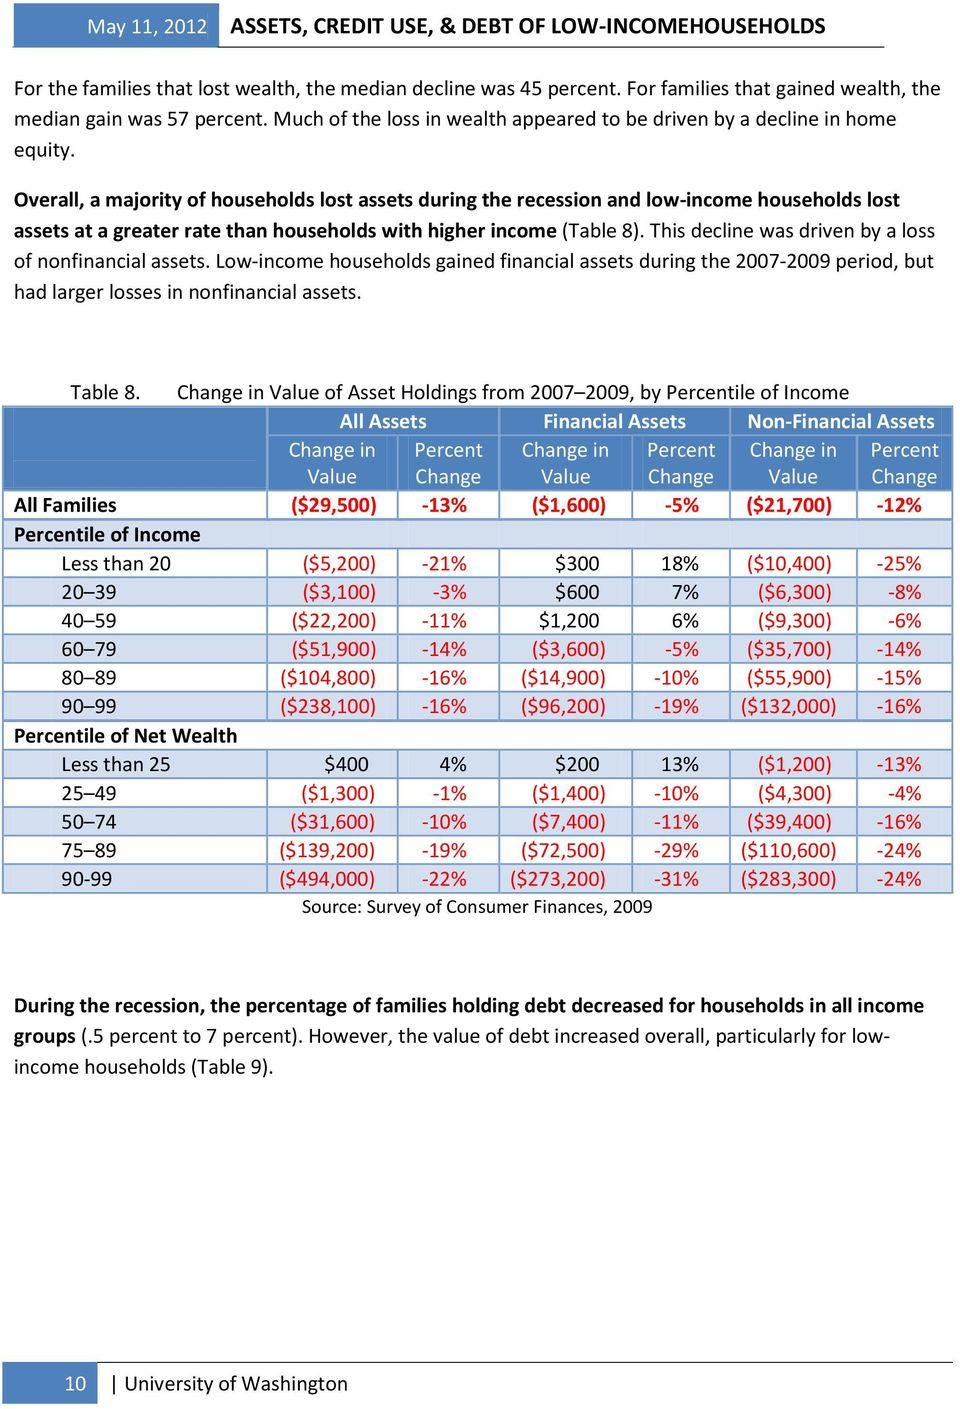 Overall, a majority of households lost assets during the recession and low-income households lost assets at a greater rate than households with higher income (Table 8).